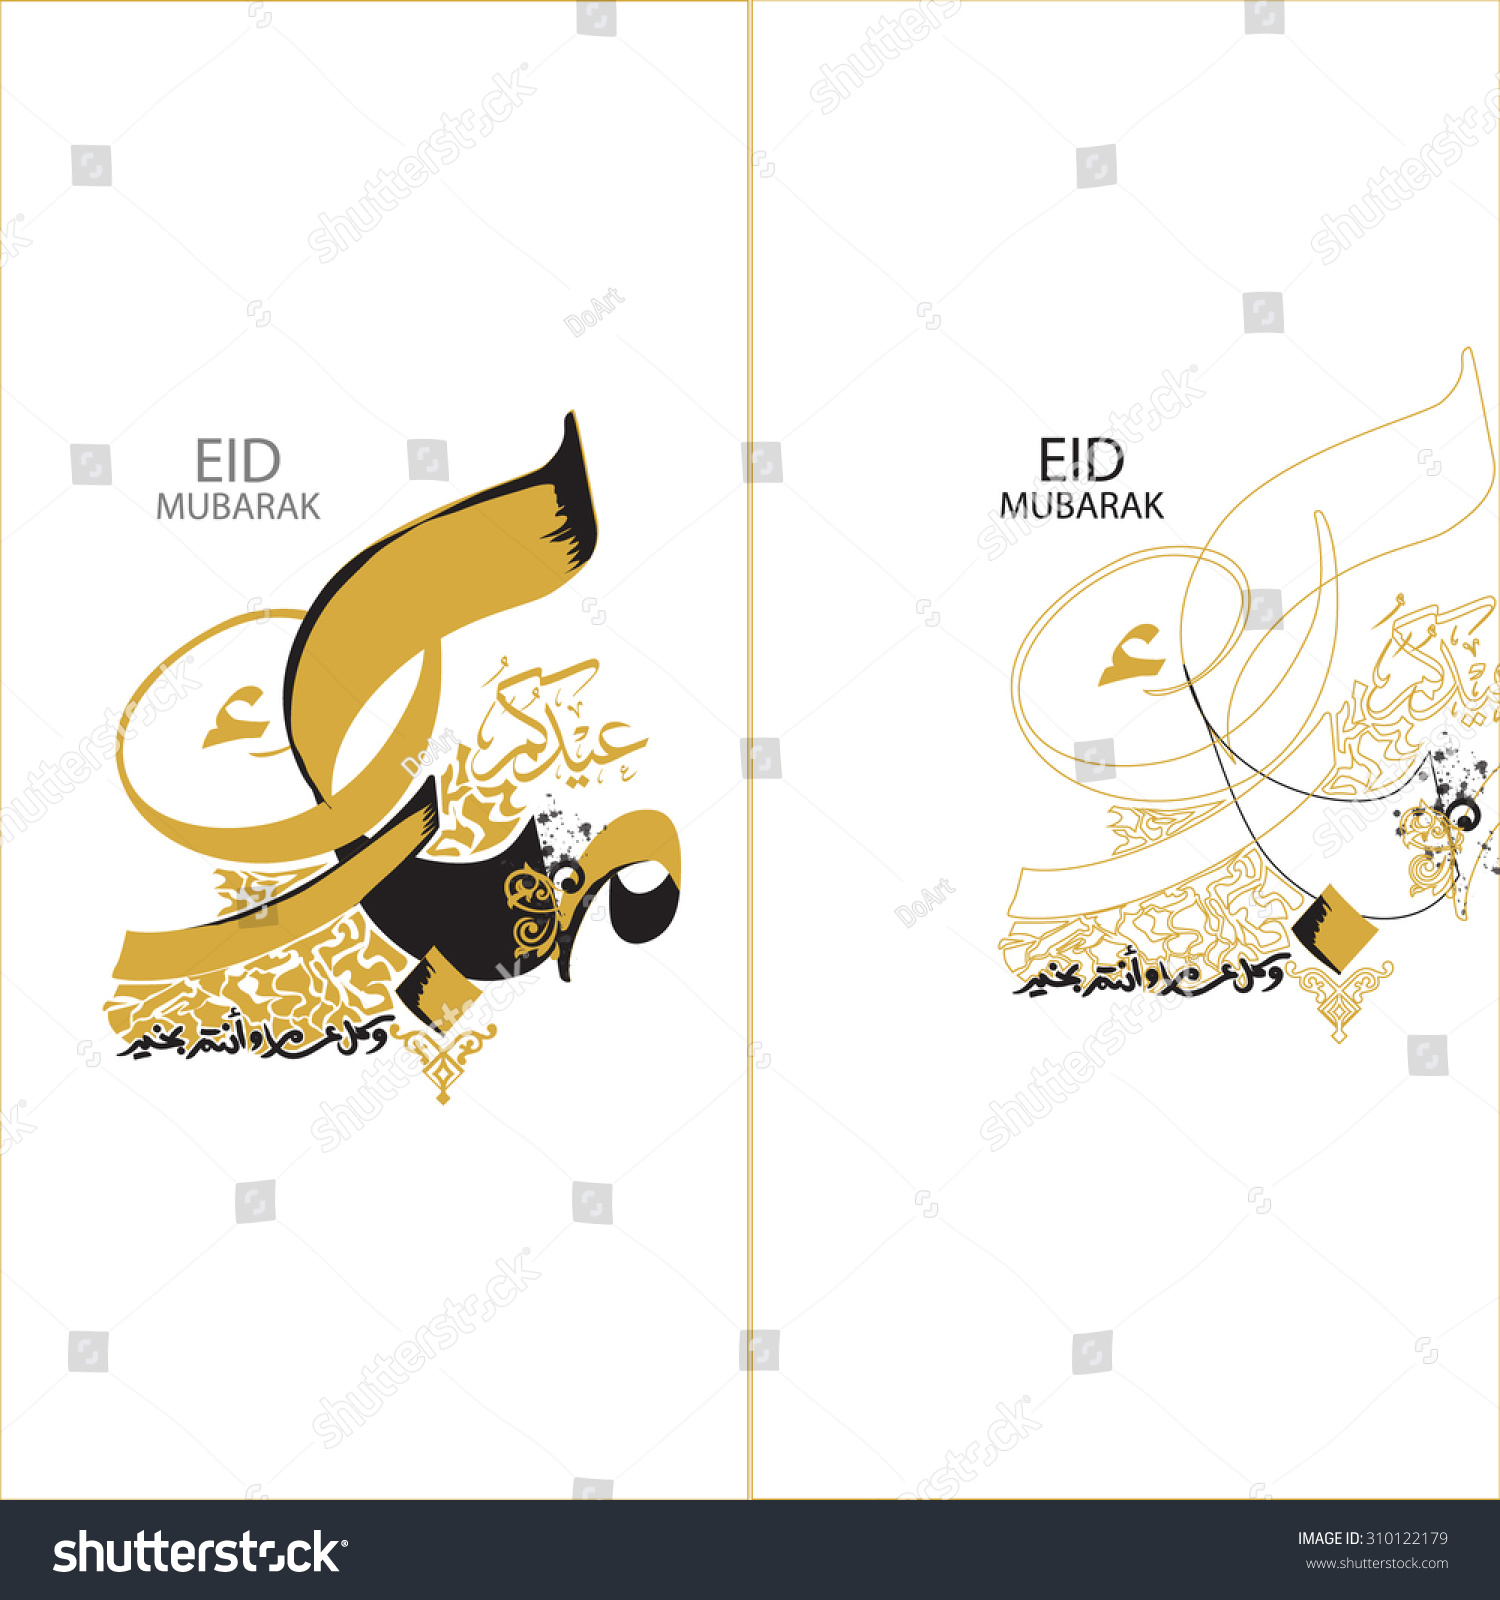 Eid mubarak greeting card arabic calligraphy stock vector royalty eid mubarak greeting card in arabic calligraphy with a contemporary style specially for eid al adha m4hsunfo